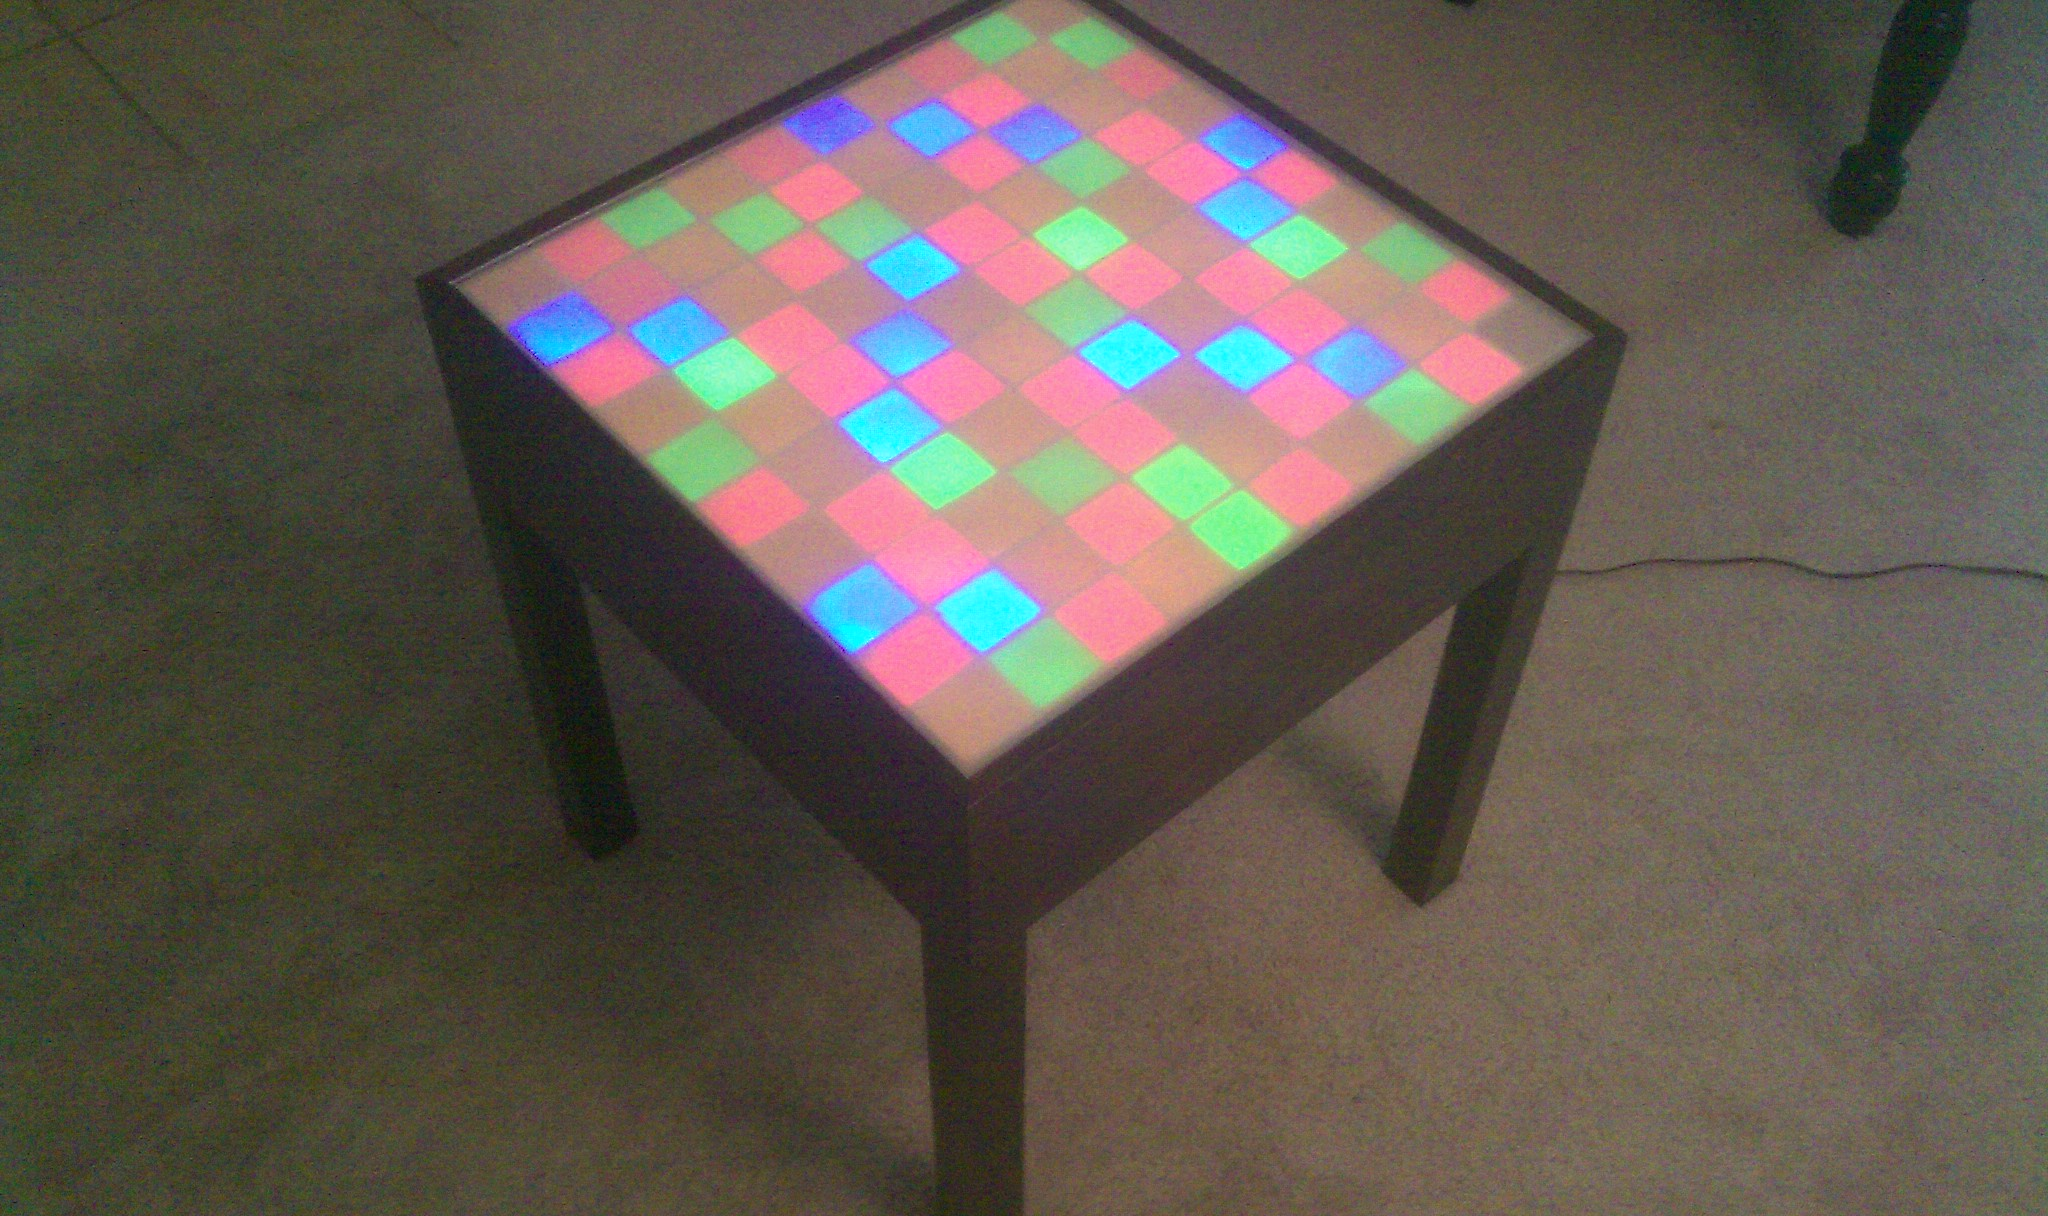 The easy light up, animated table. No electronics skills needed!